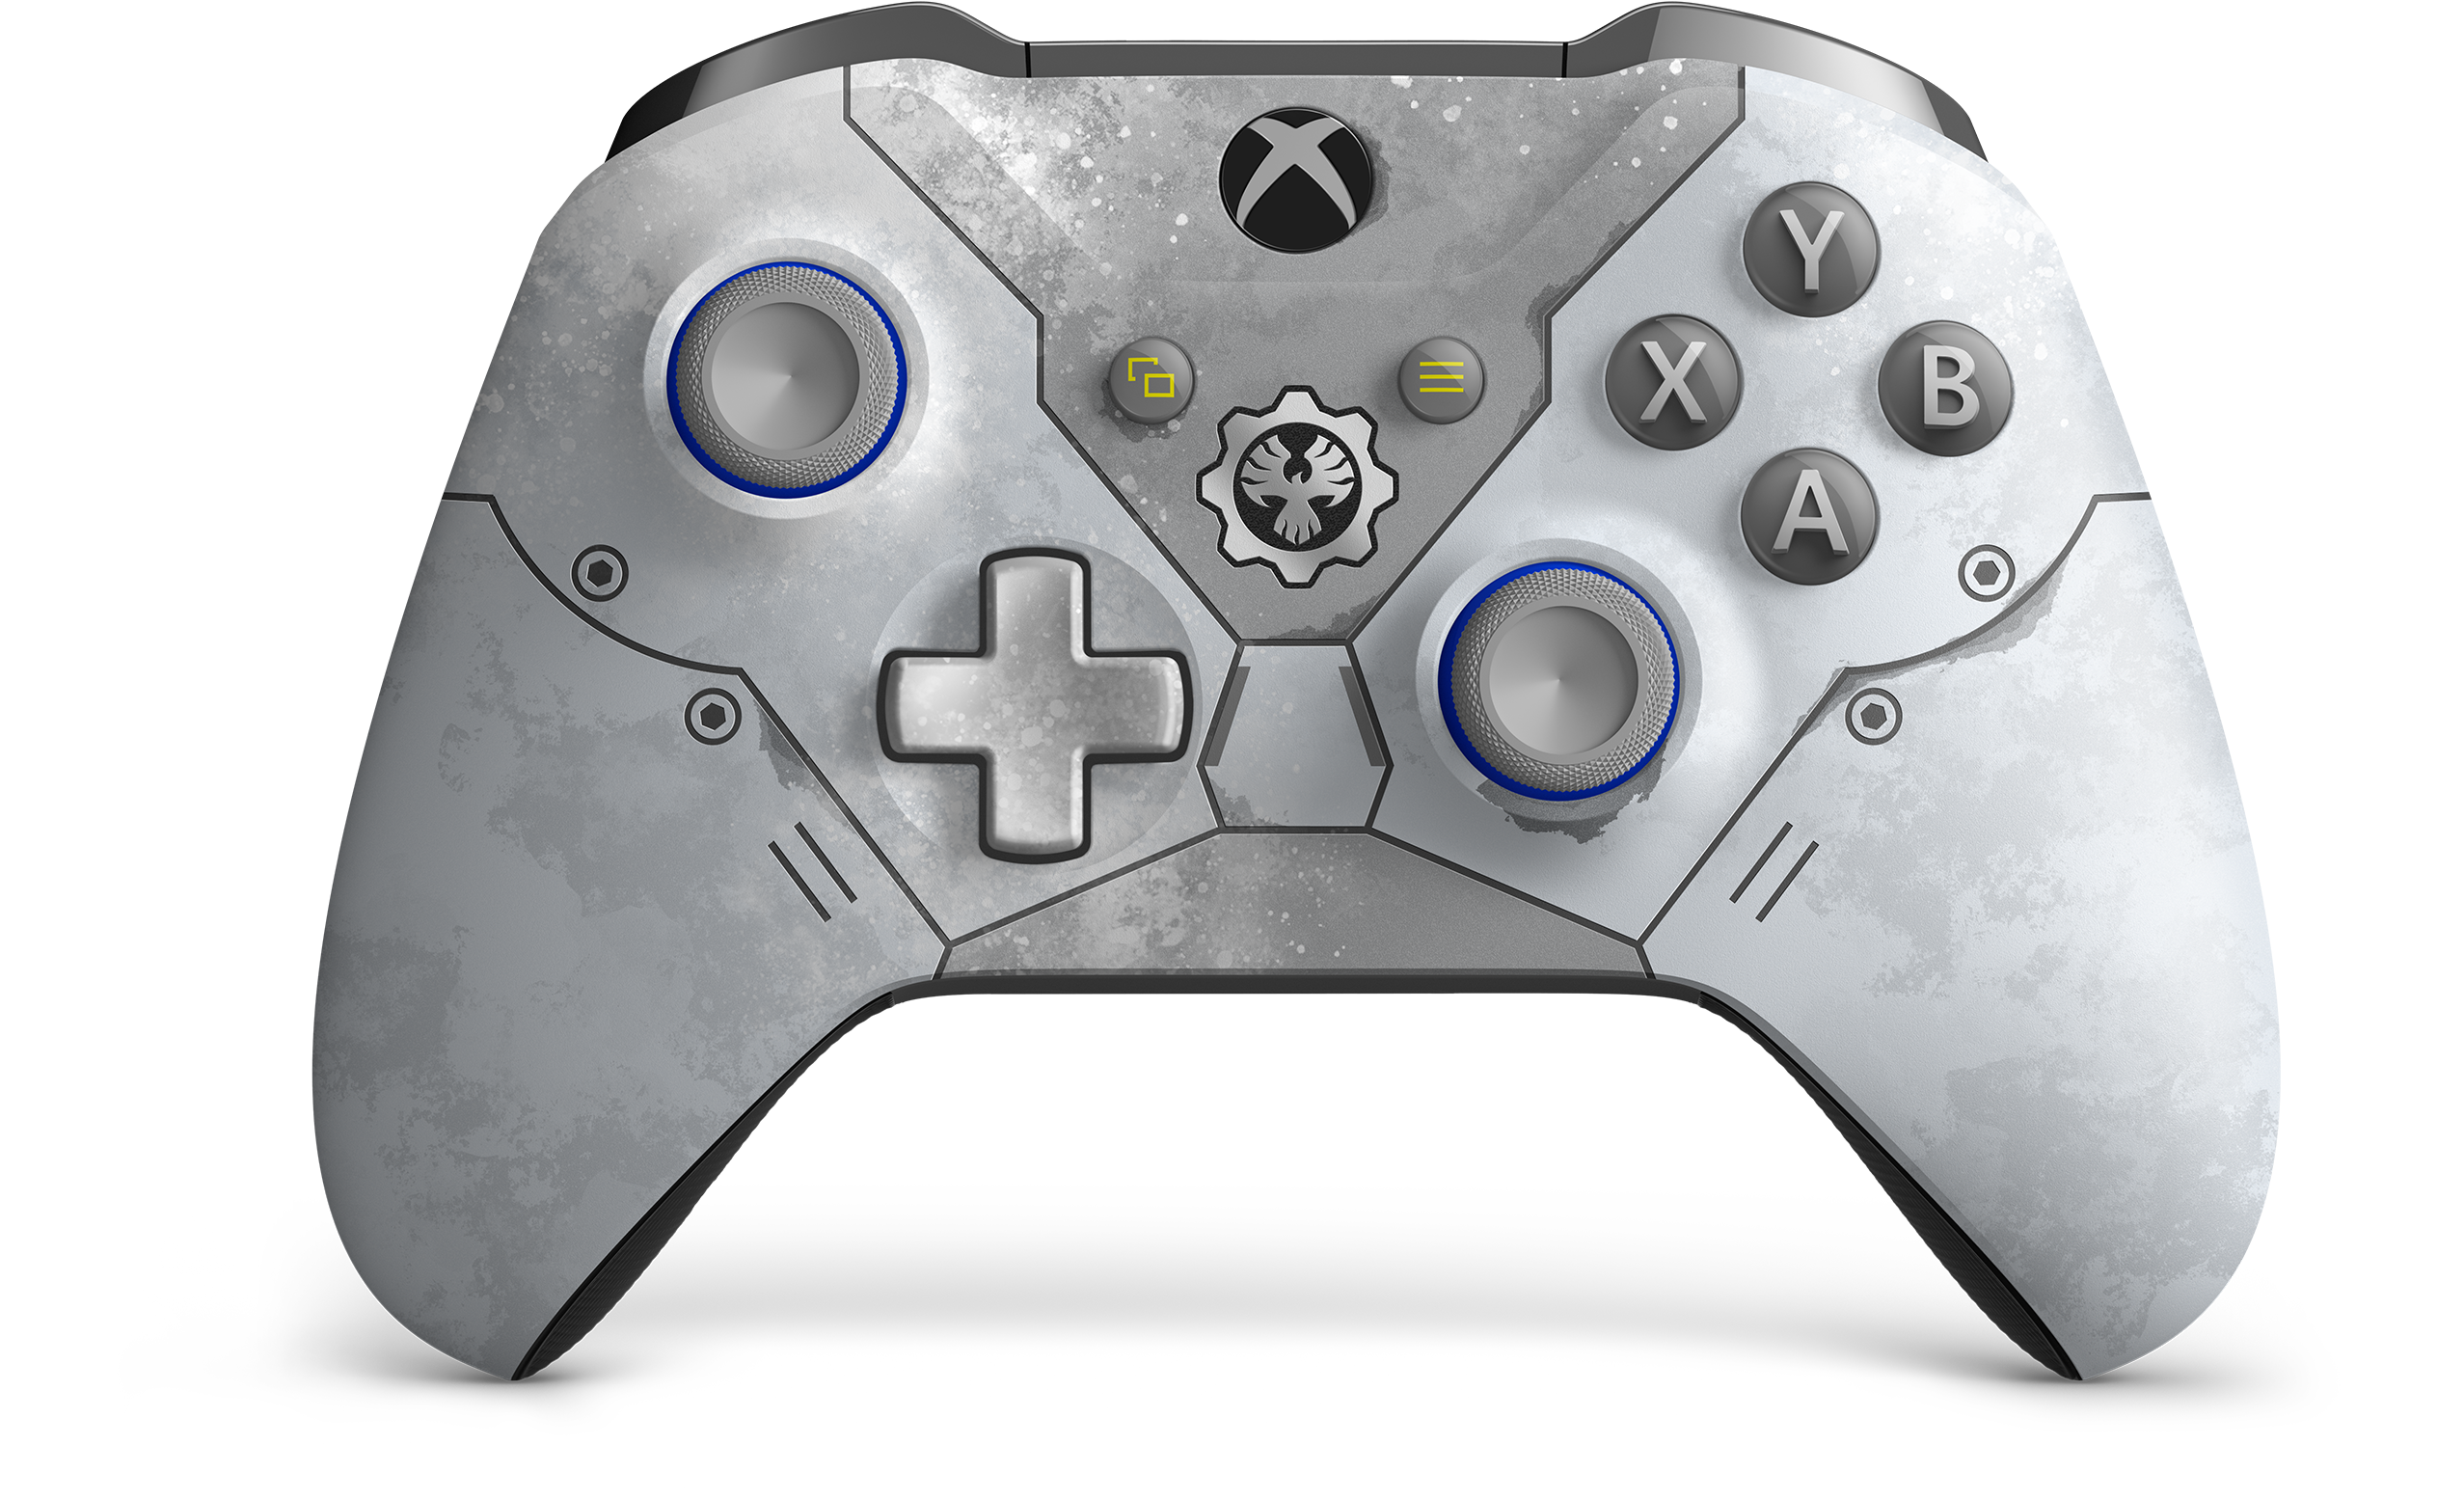 Controller Wireless per Xbox - Gears 5 Kait Diaz Limited Edition